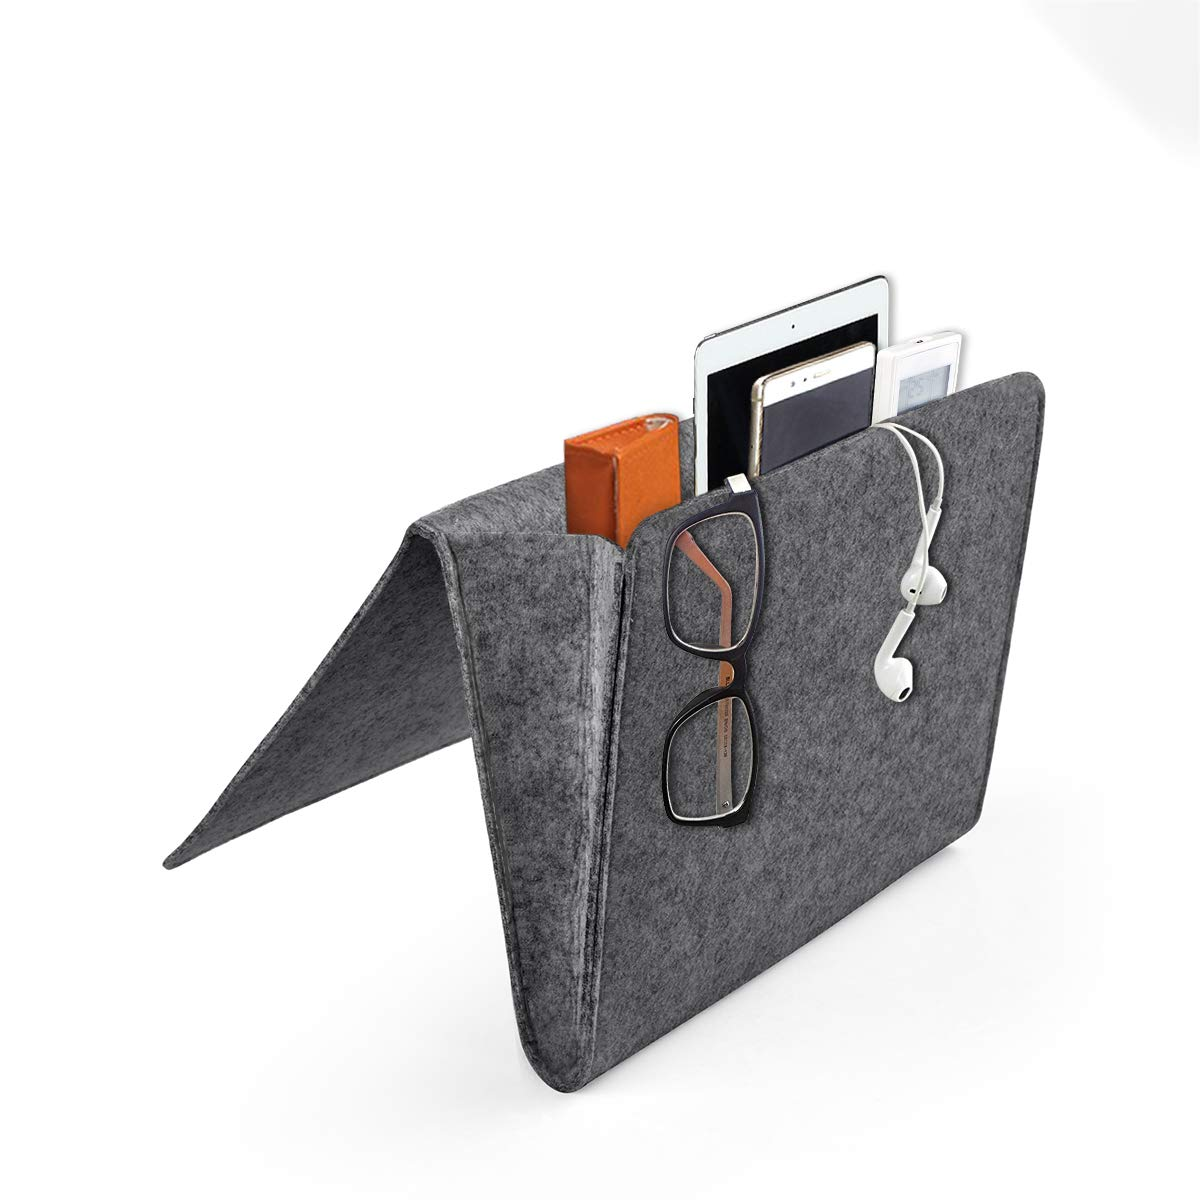 Daite 0.2 Inches Thick Felt Bedside Caddy Pocket, Inside with 2 Small Pockets for Organizing Phone, Remote, Magzine, Glasses and Pen (Dark Grey) Winstar Electronics Tech co. ltd